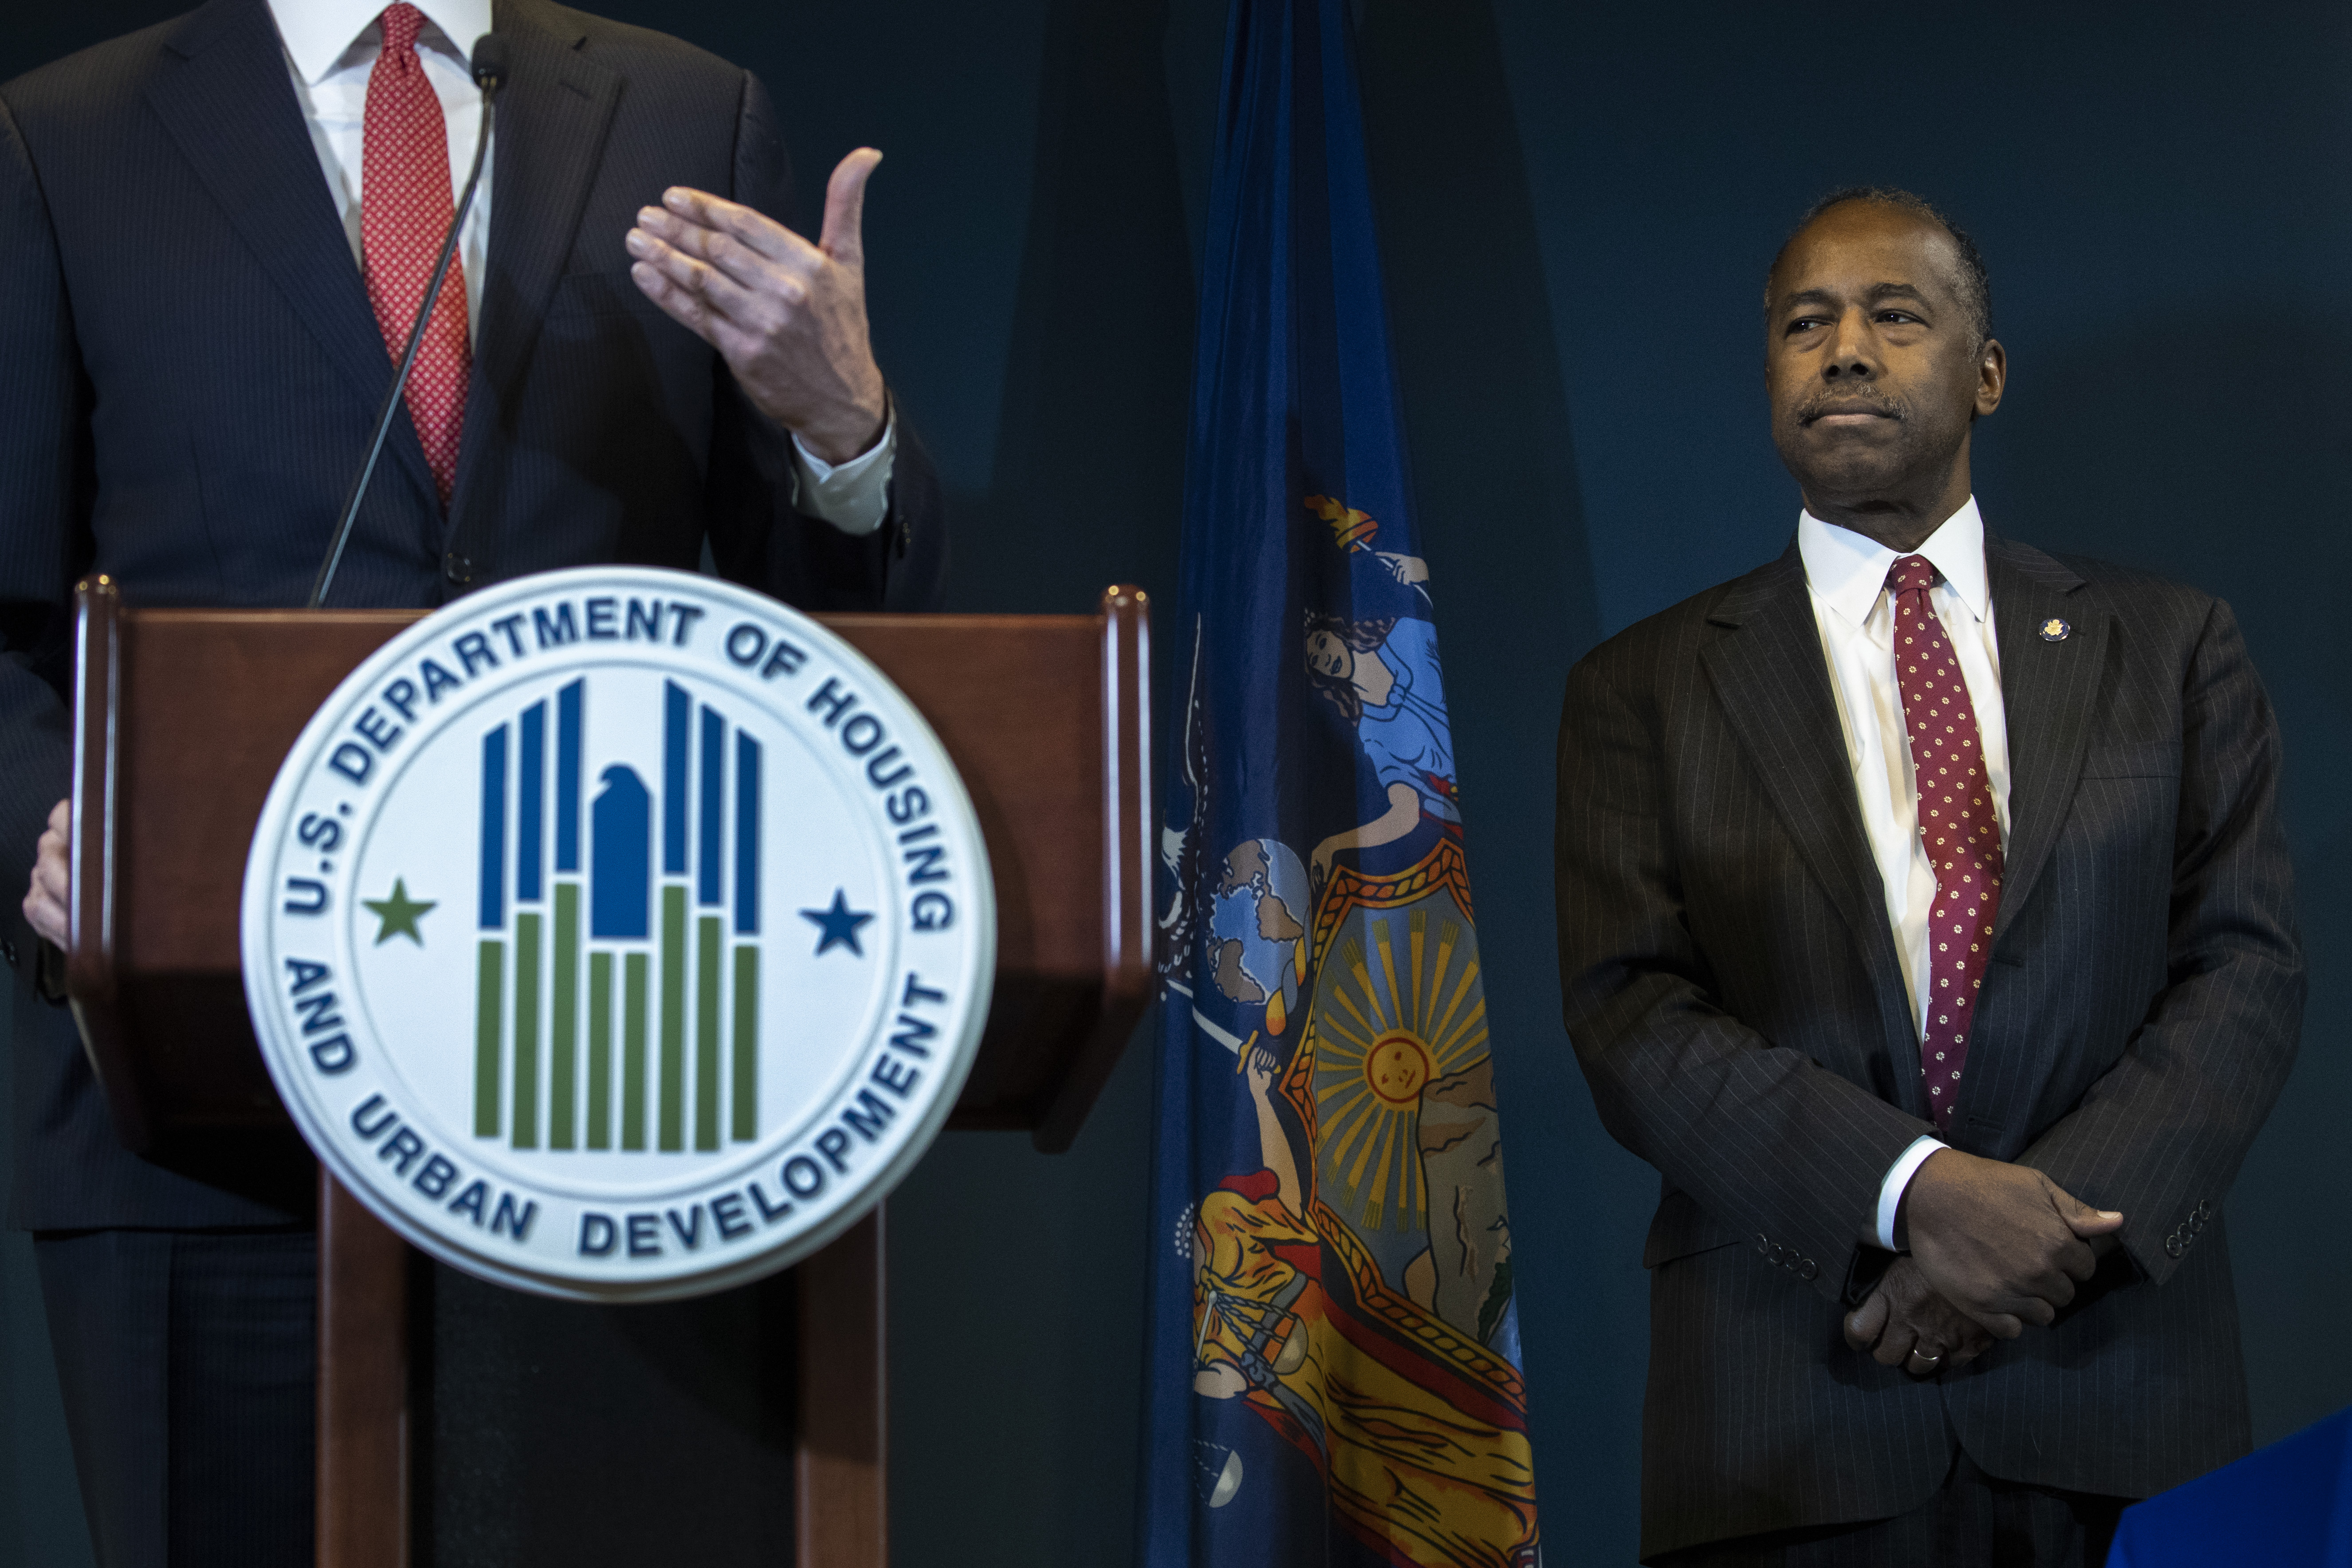 Ben Carson, Secretary of Housing and Urban Development, signs an agreement with New York City to correct mismanagement of the city's housing department. (Drew Angerer/Getty Images)